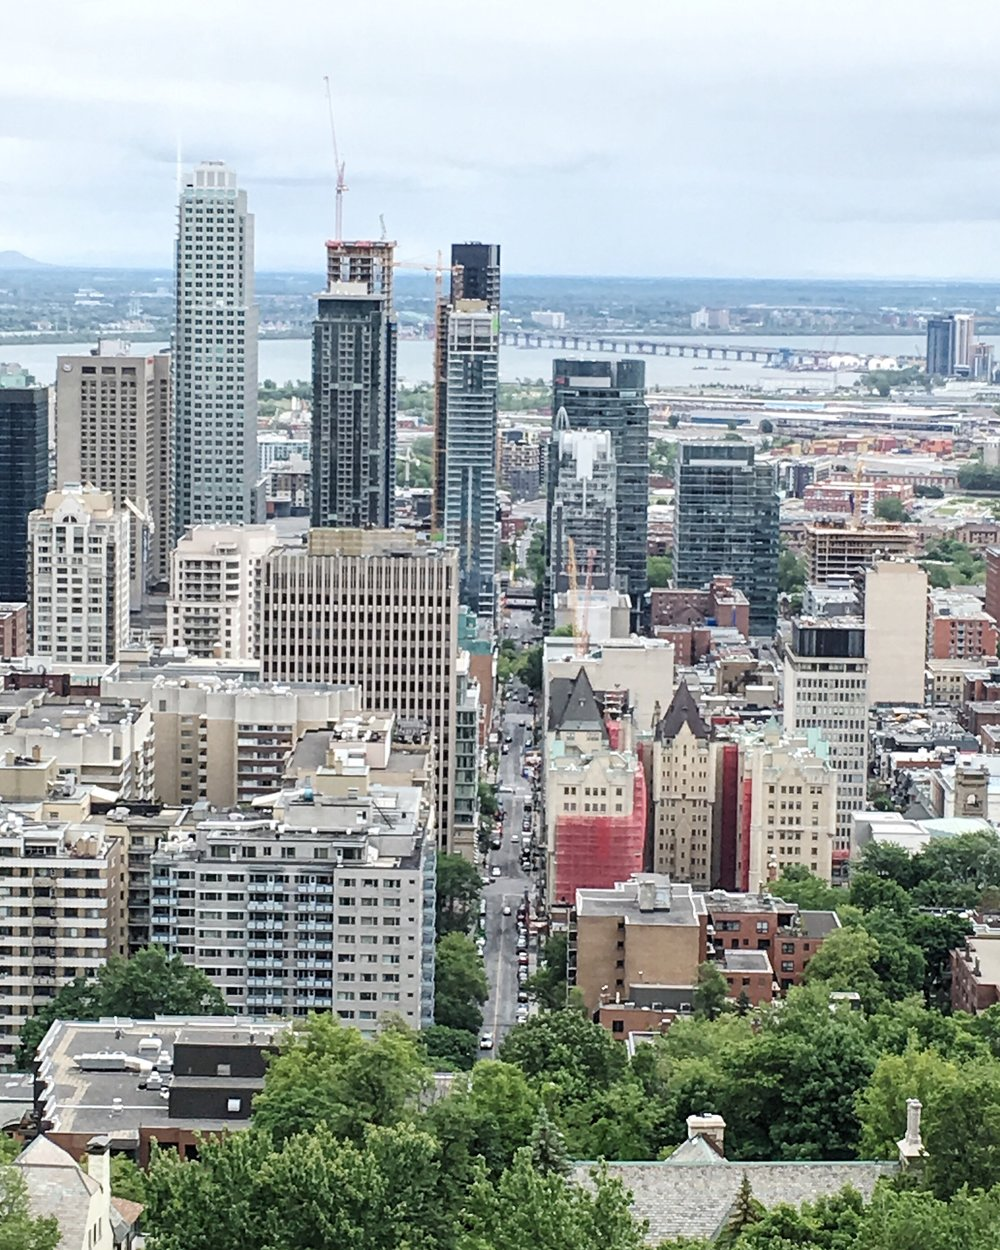 From Mont Royal